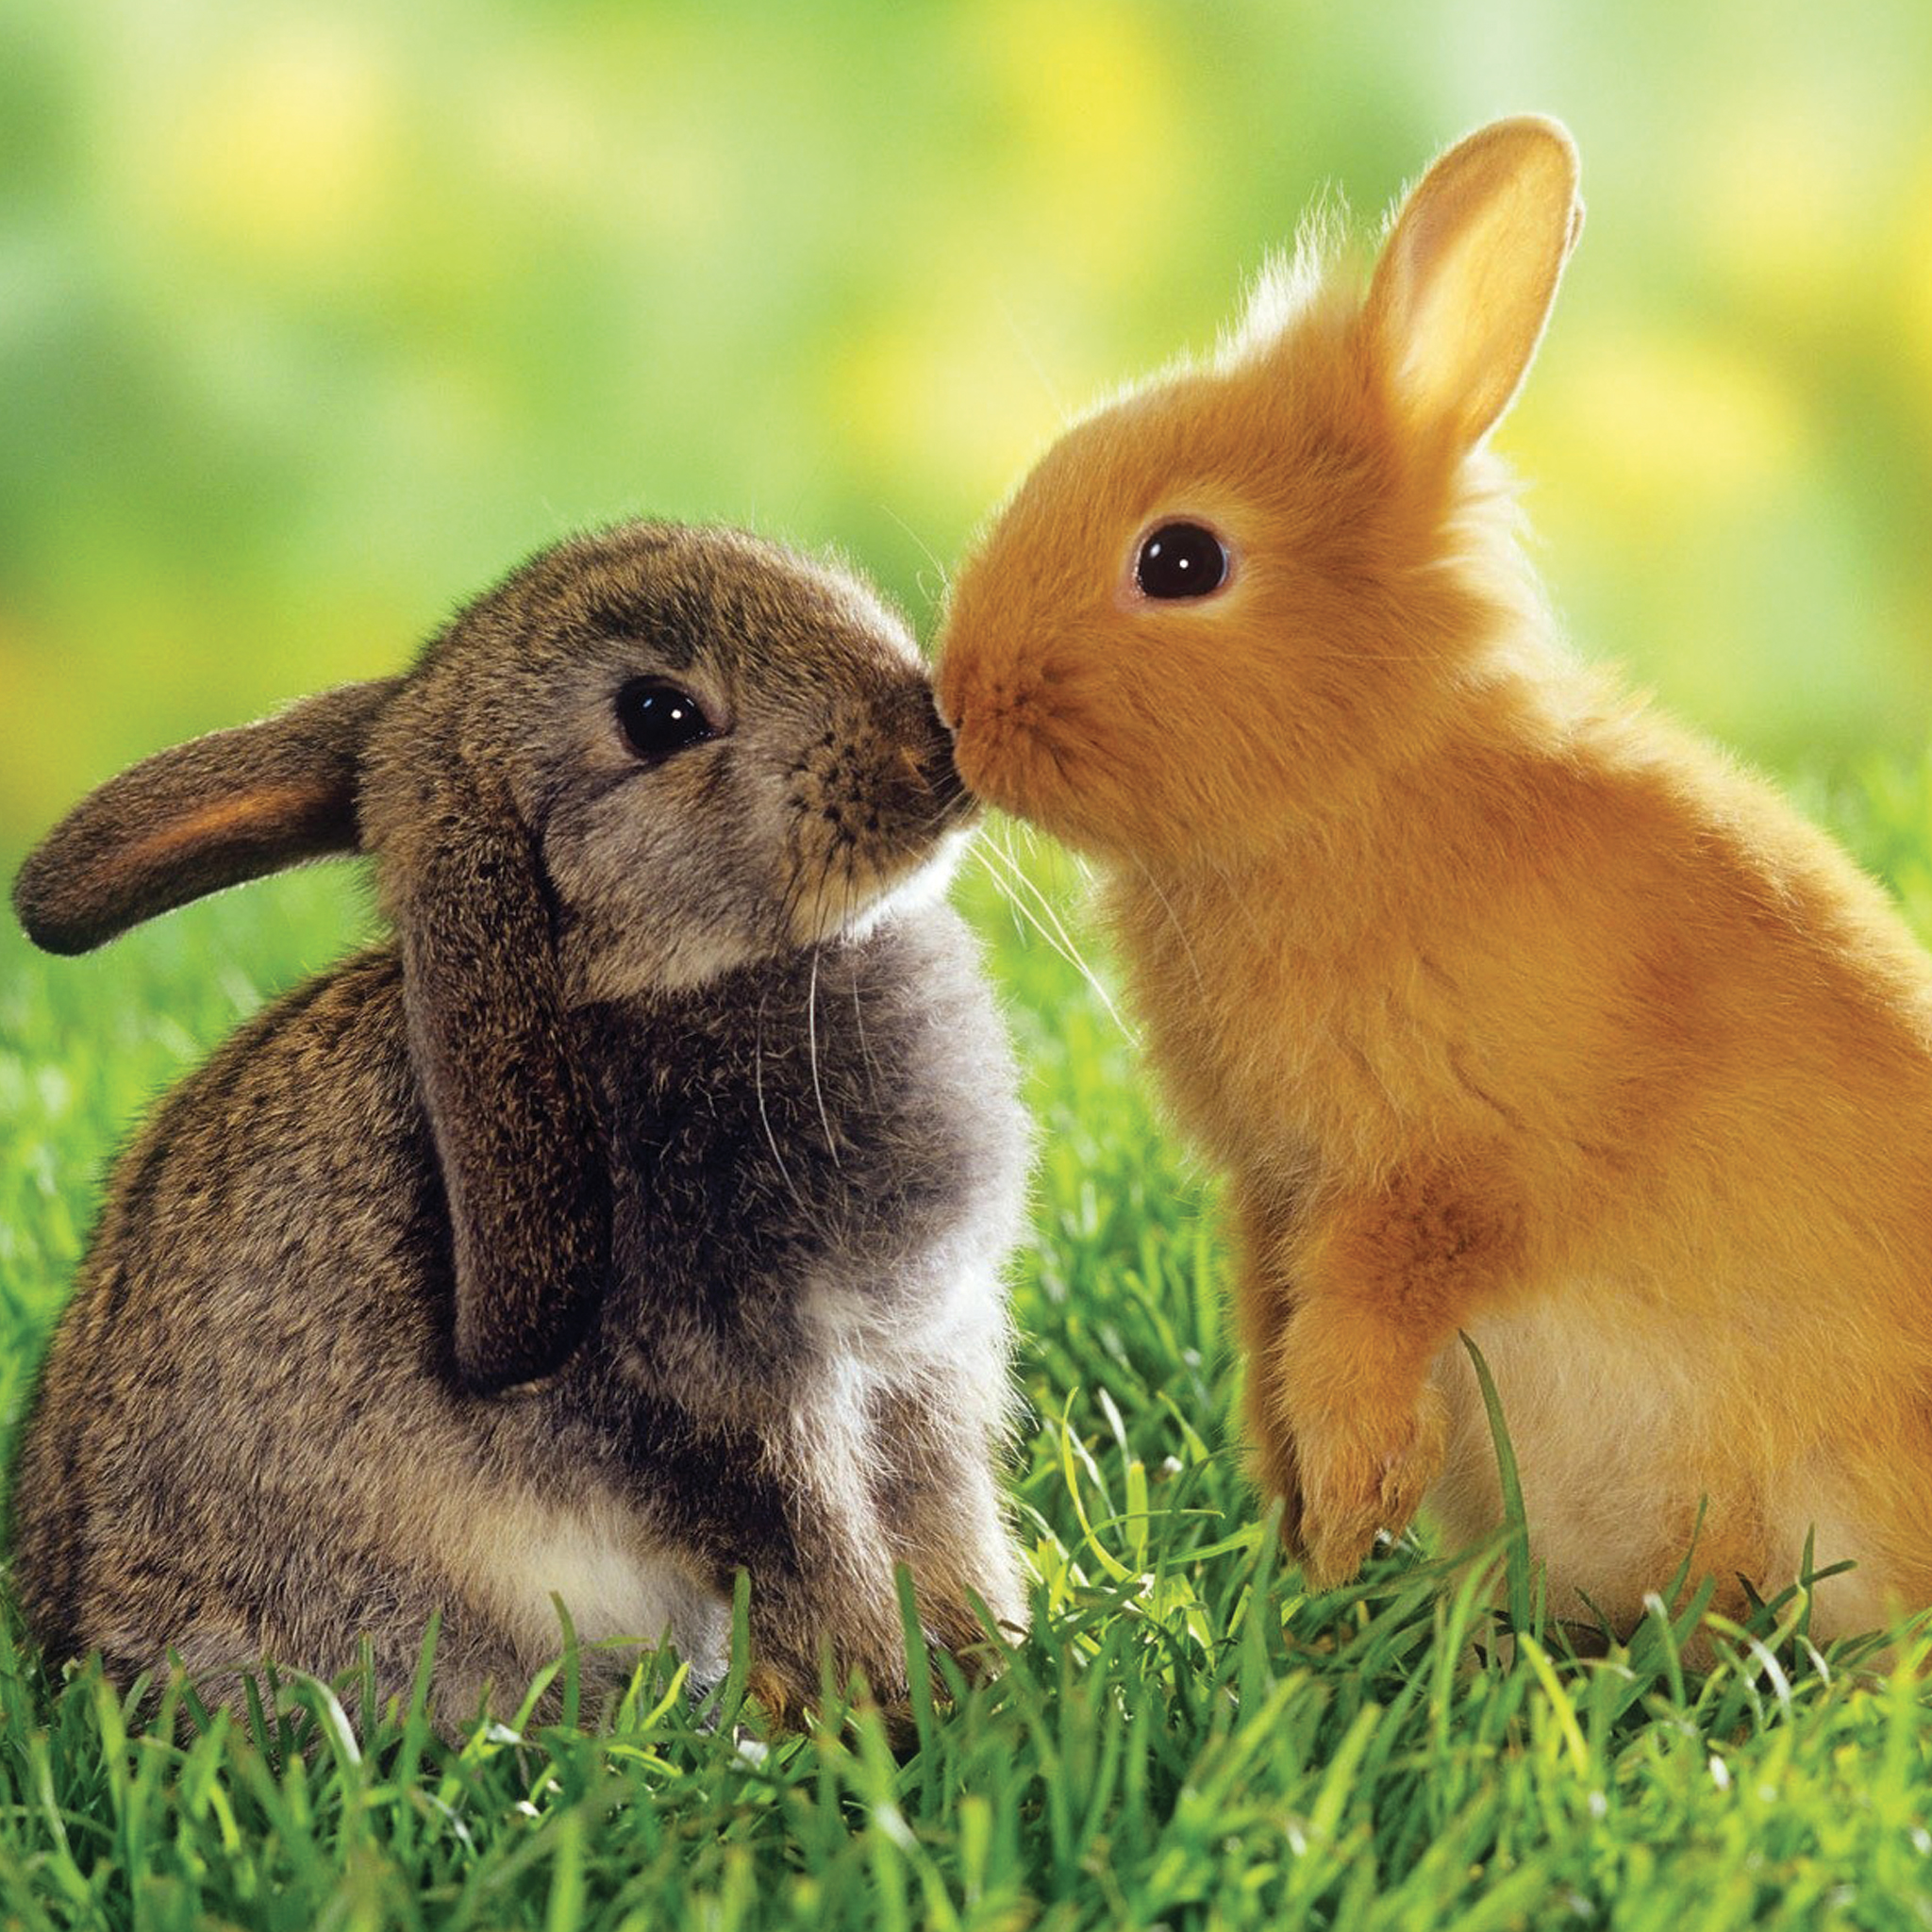 Rabbit-in-Love-3Wallpapers-iPad-Retina